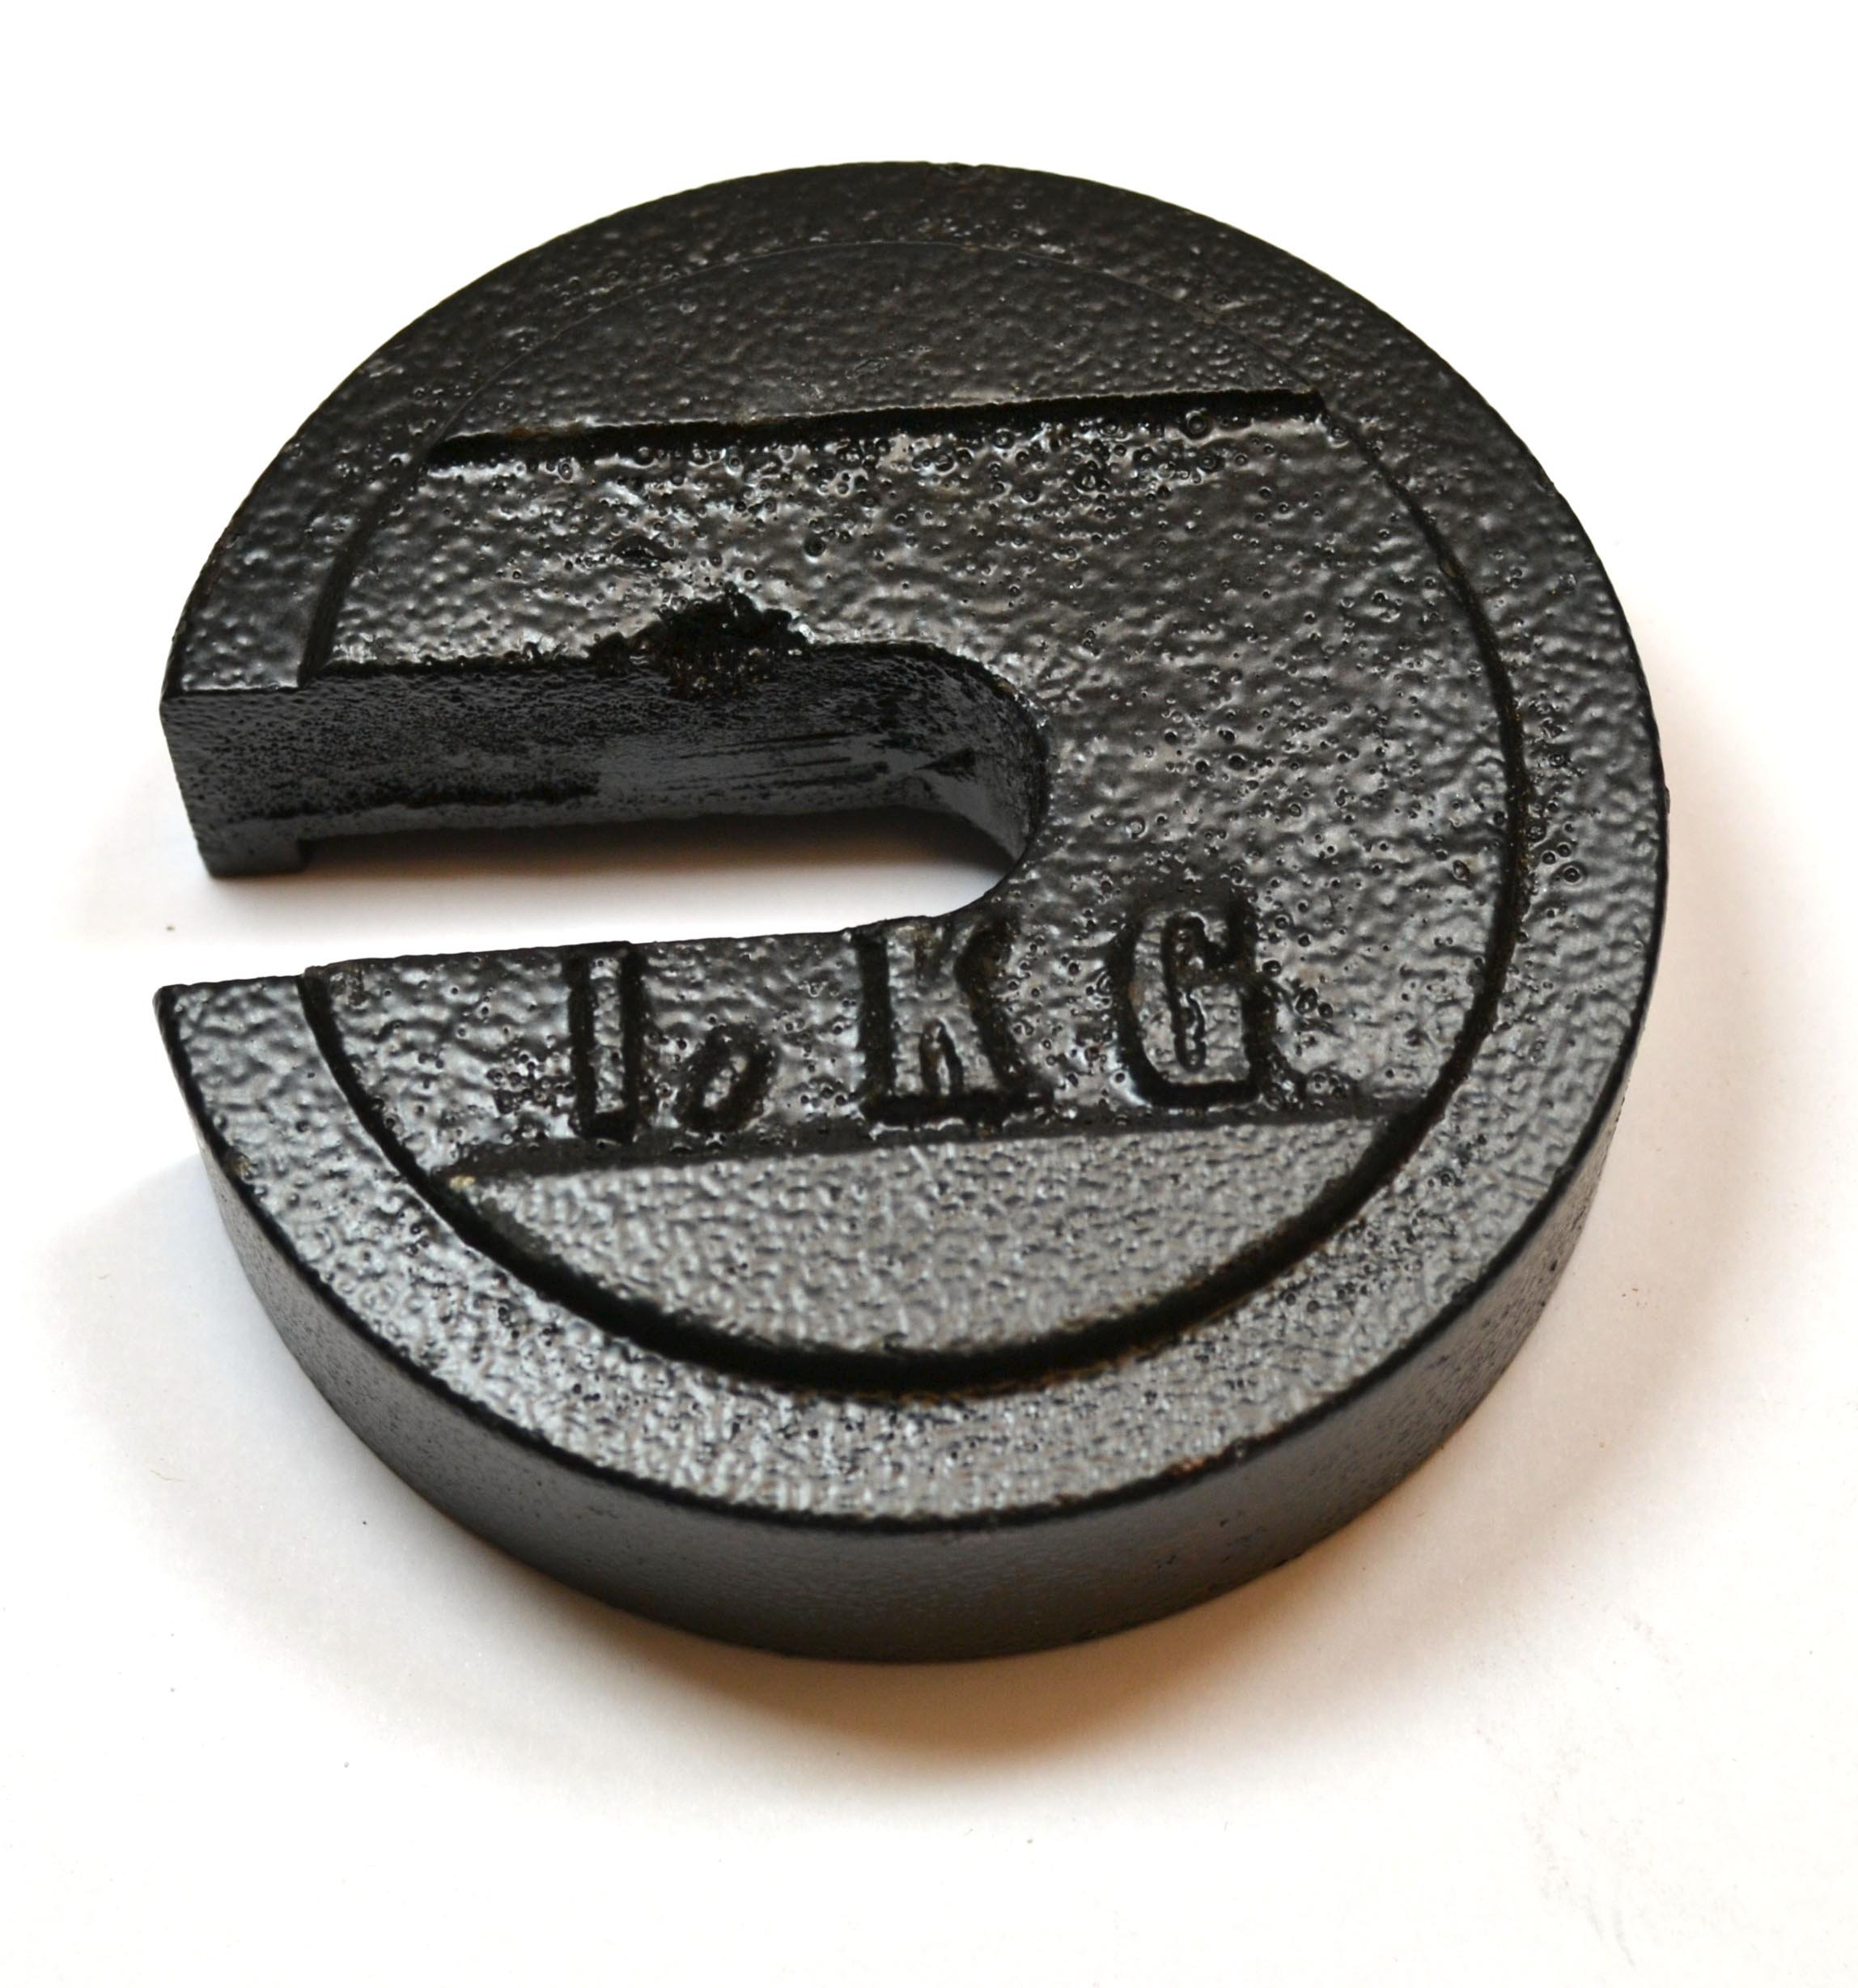 Eisco Labs Cast Iron Slotted Weight - 1 Kg Painted Black (2.20 pounds) by EISCO